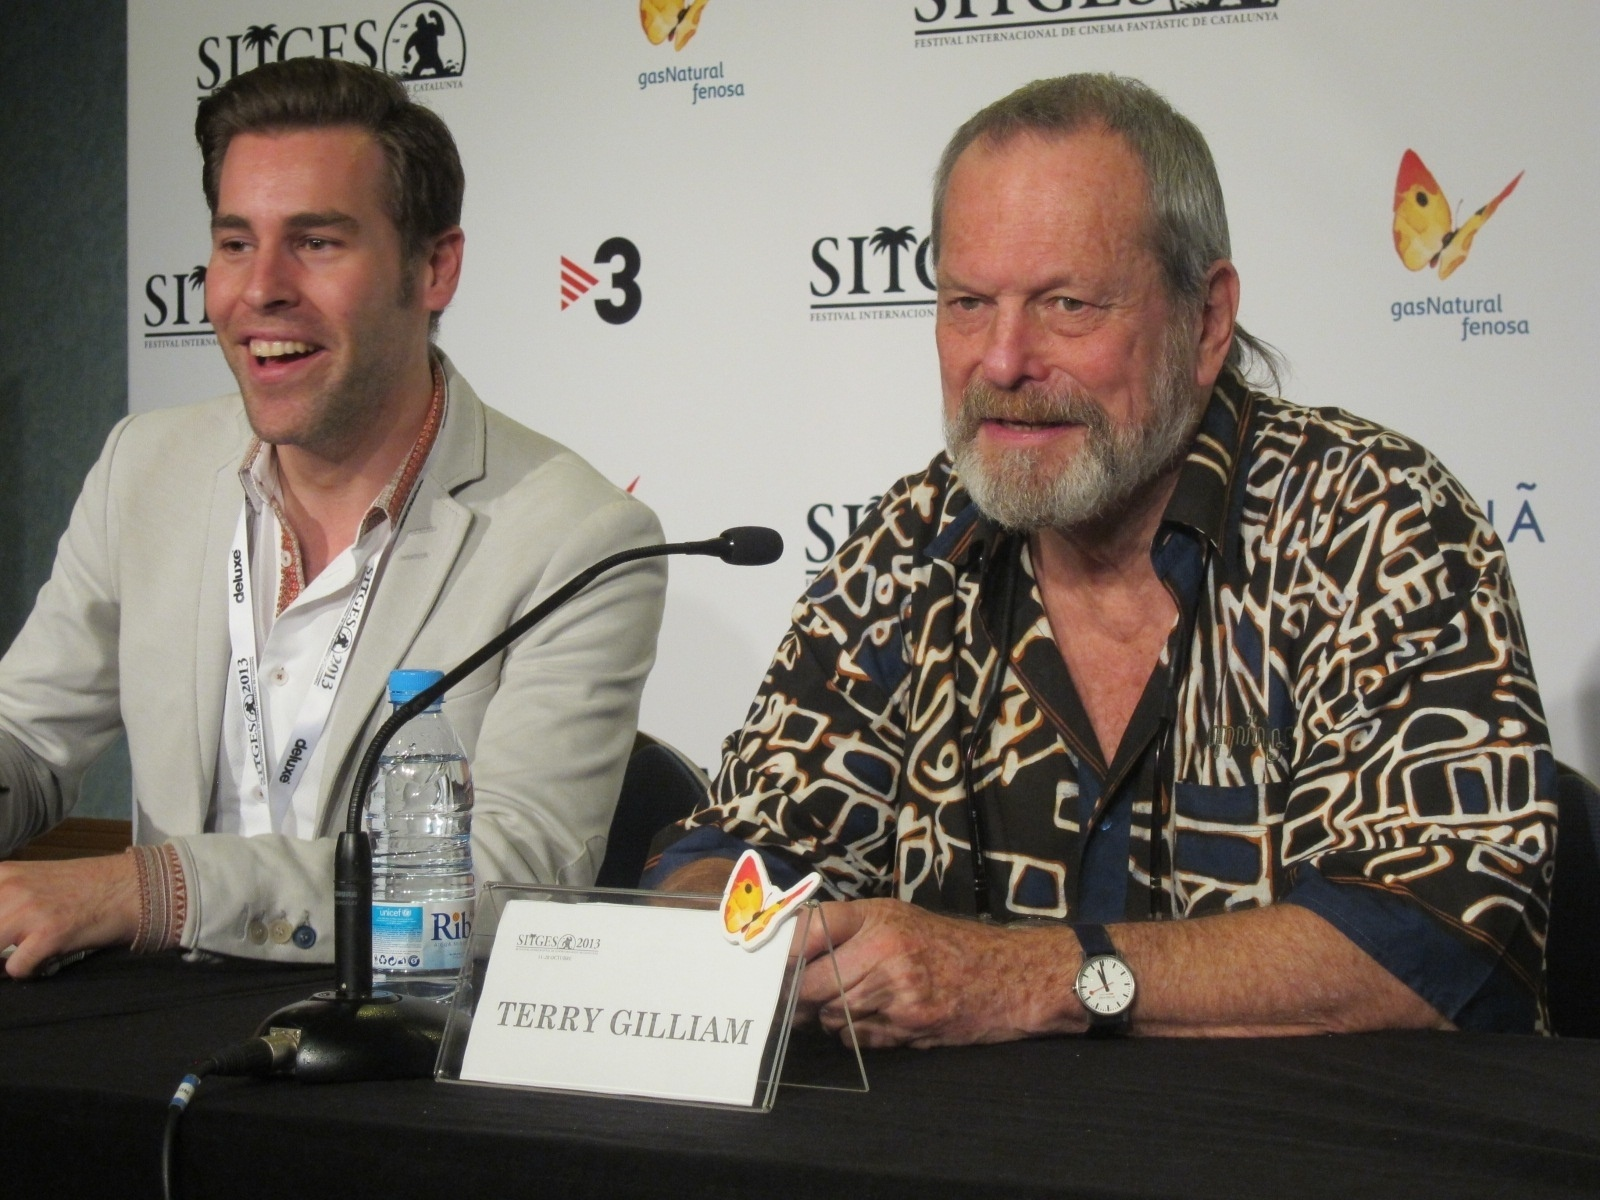 Terry Gilliam viaja a la soledad de una sociedad interconectada en el filme 'The Zero Theorem'